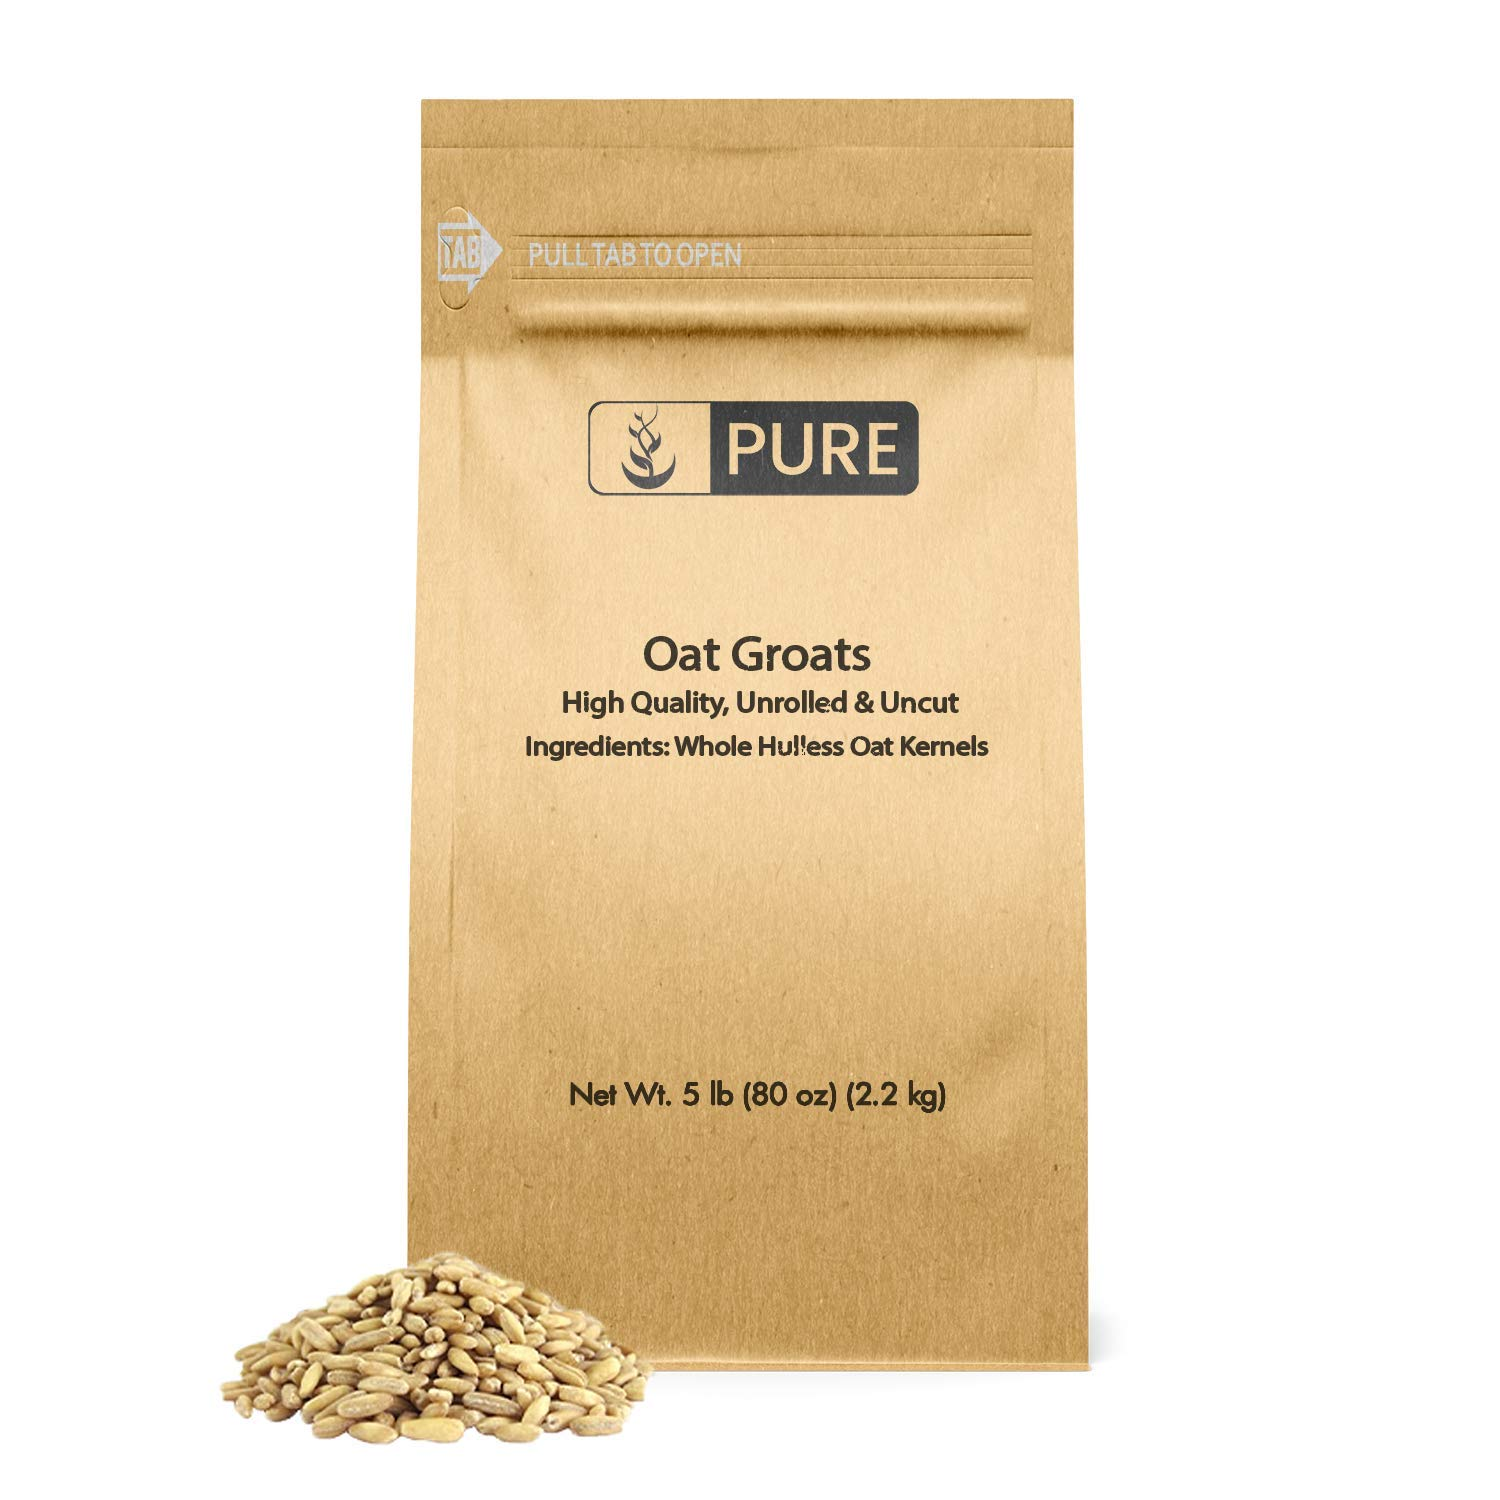 PURE Oat Groats (5 lbs) Whole, Uncut & Hulless, High-in-Protein Oat Kernels (¼ Cup Serving)